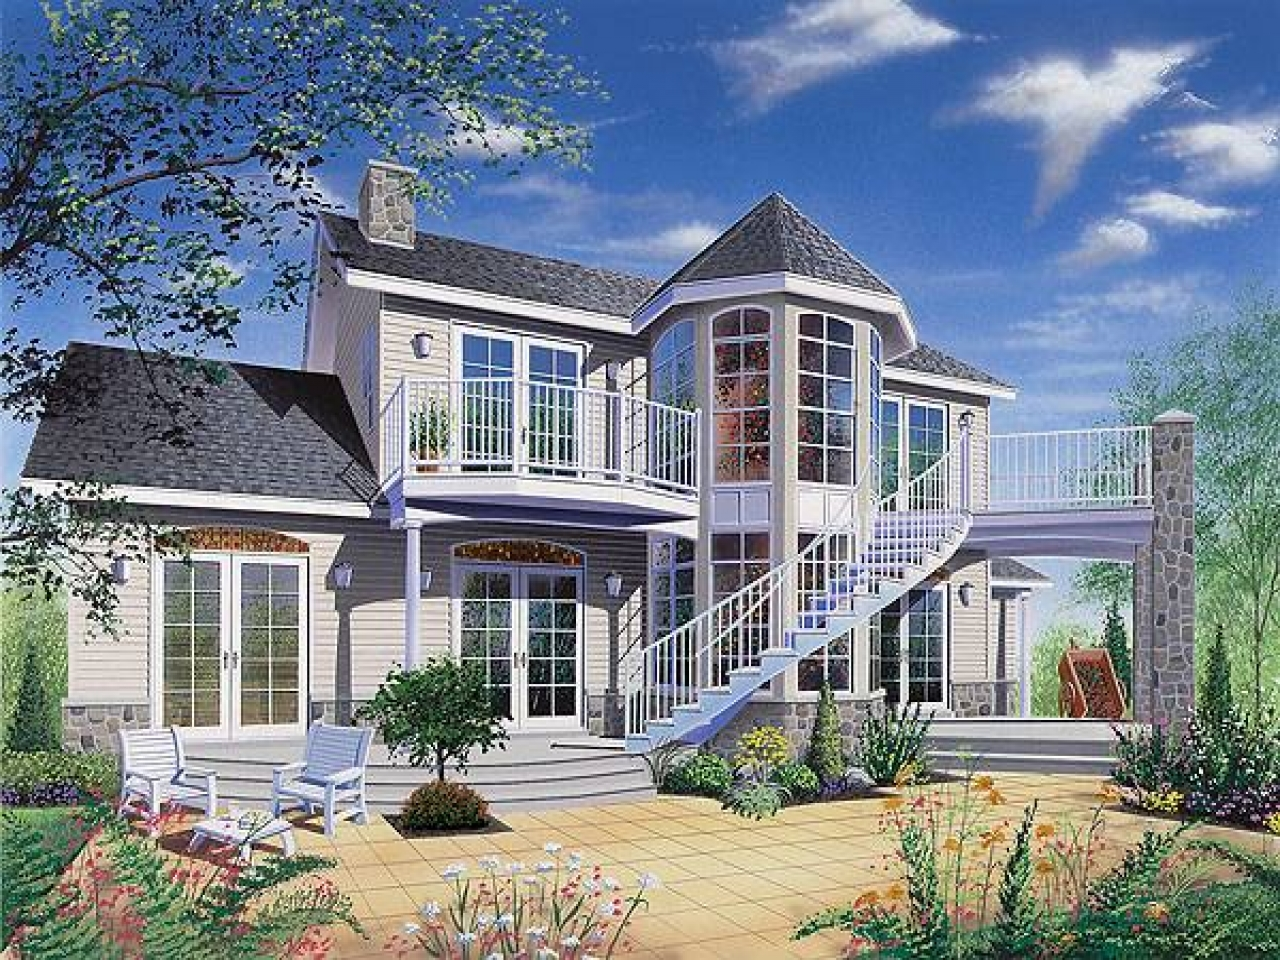 Best beach house designs contemporary beach house designs for Best coastal home plans